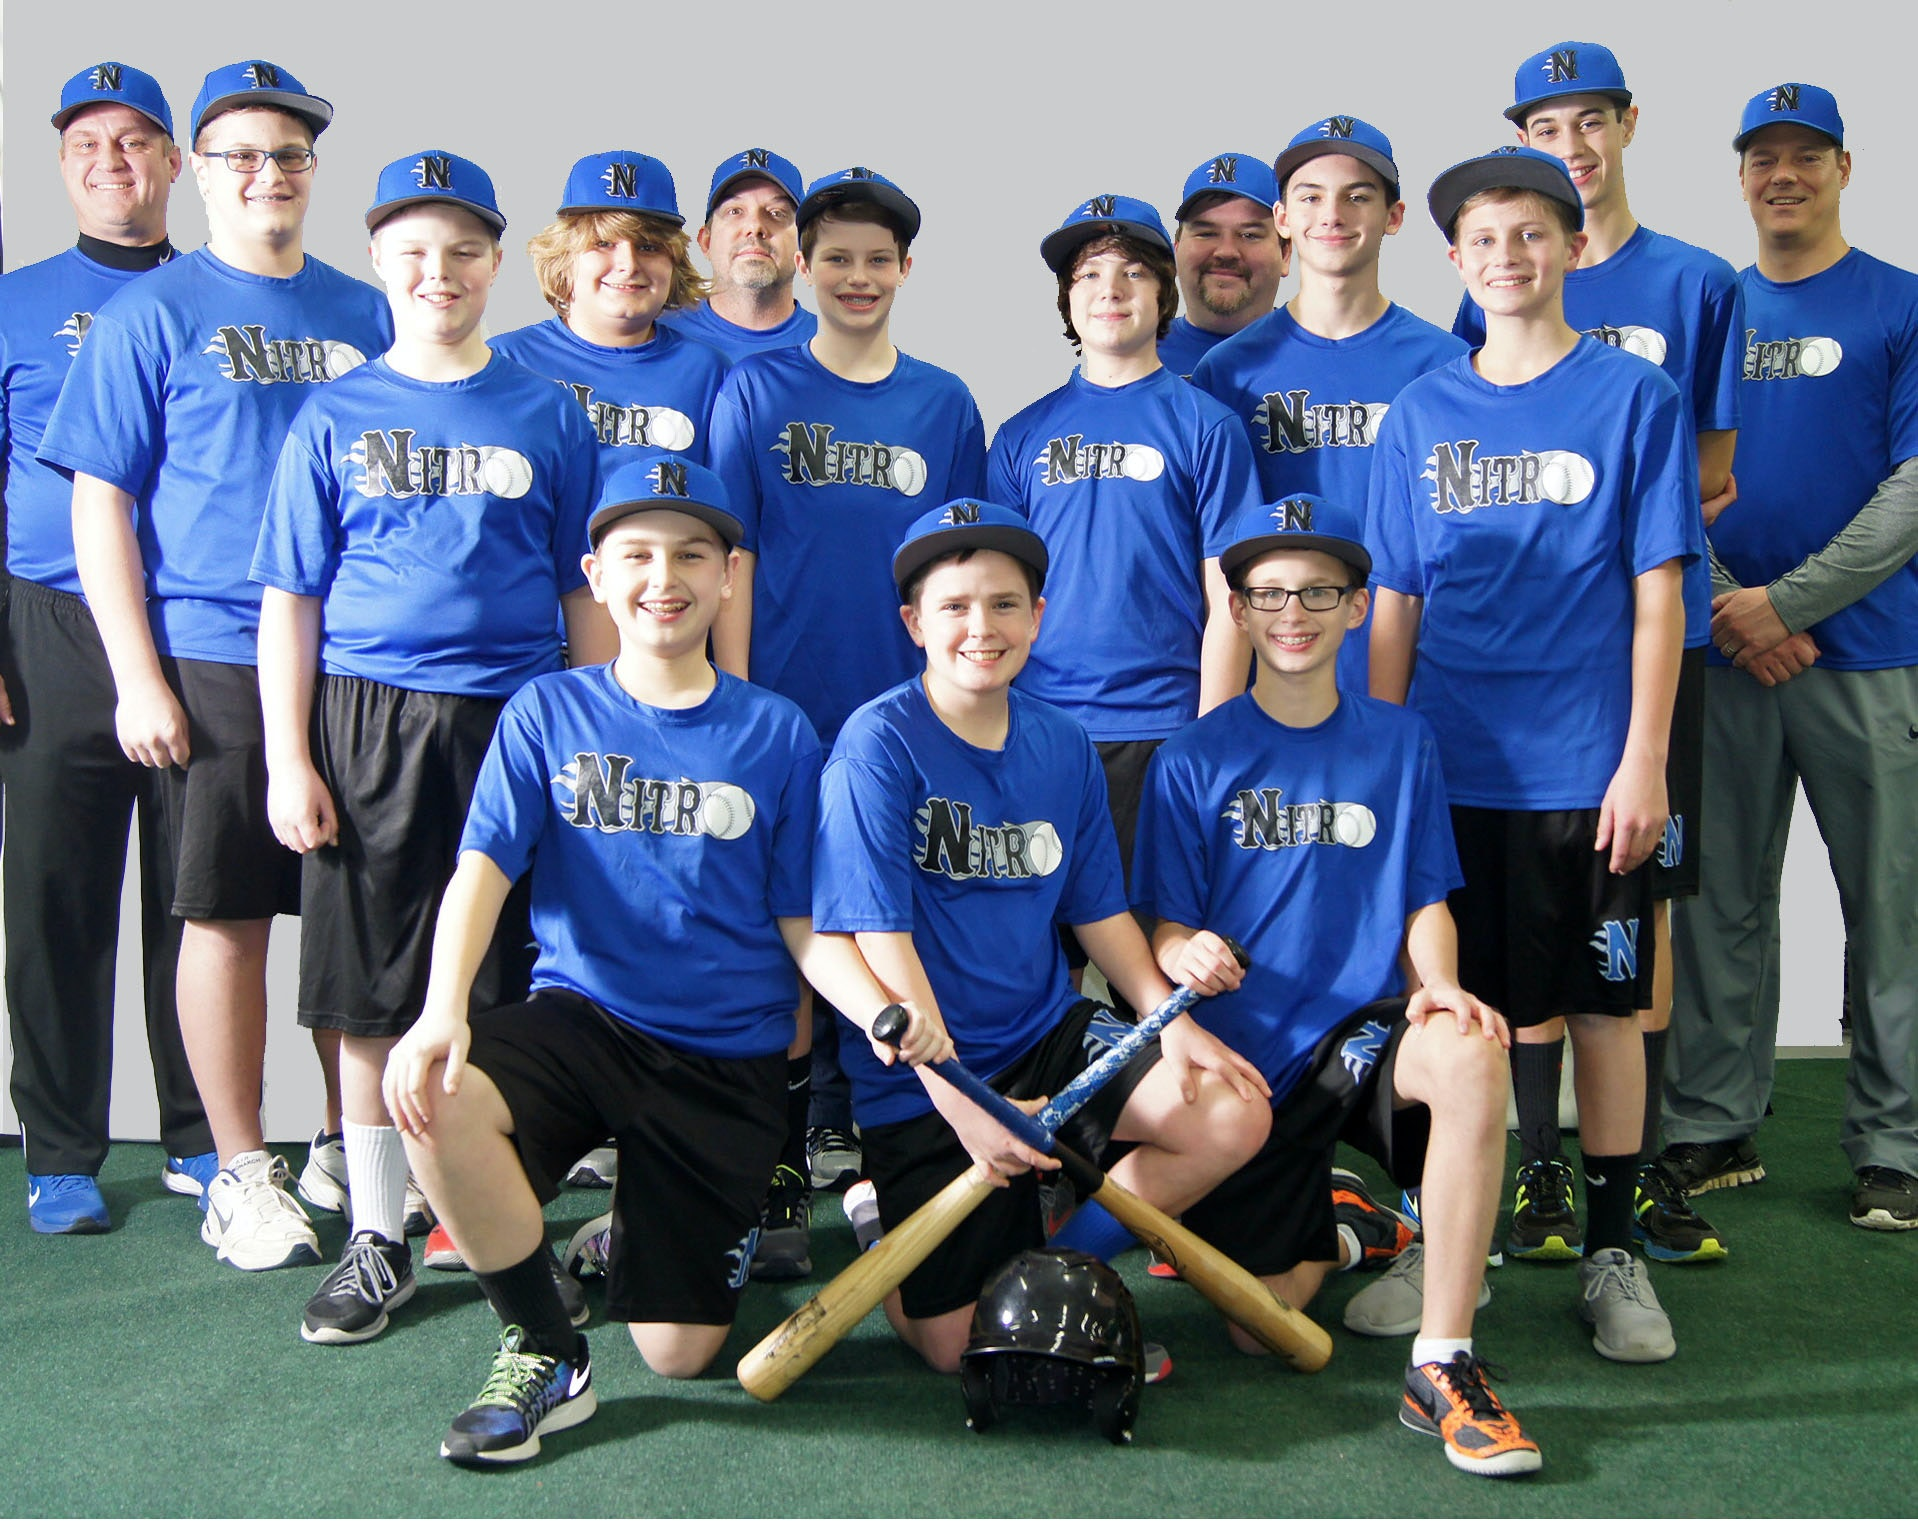 13U Novi Nitro - Tournament Fund